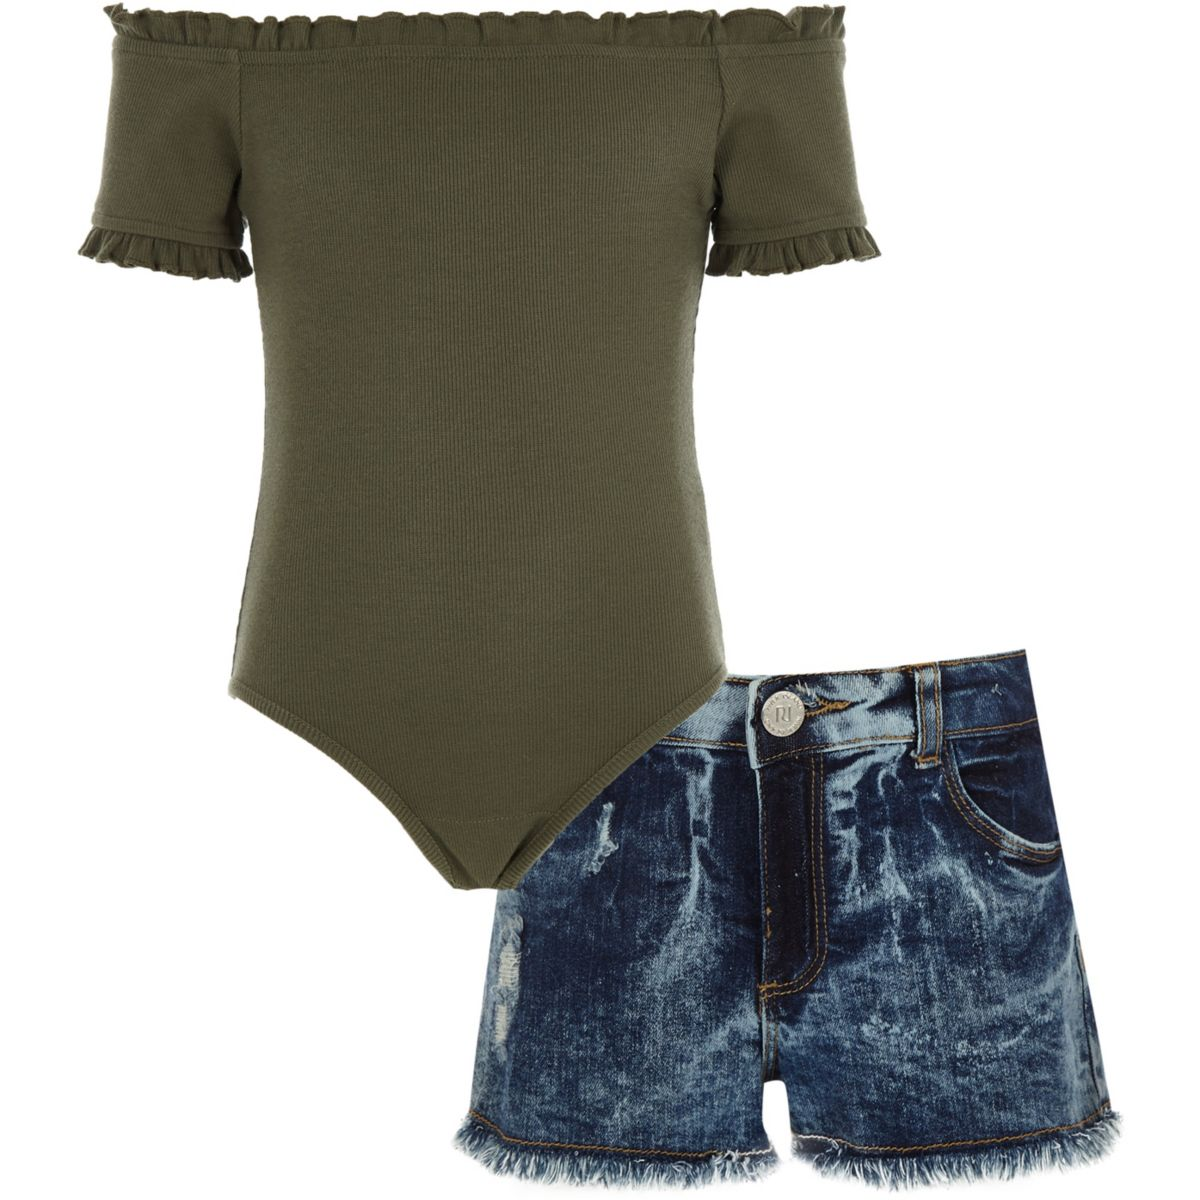 Girls khaki frill bodysuit and shorts outfit